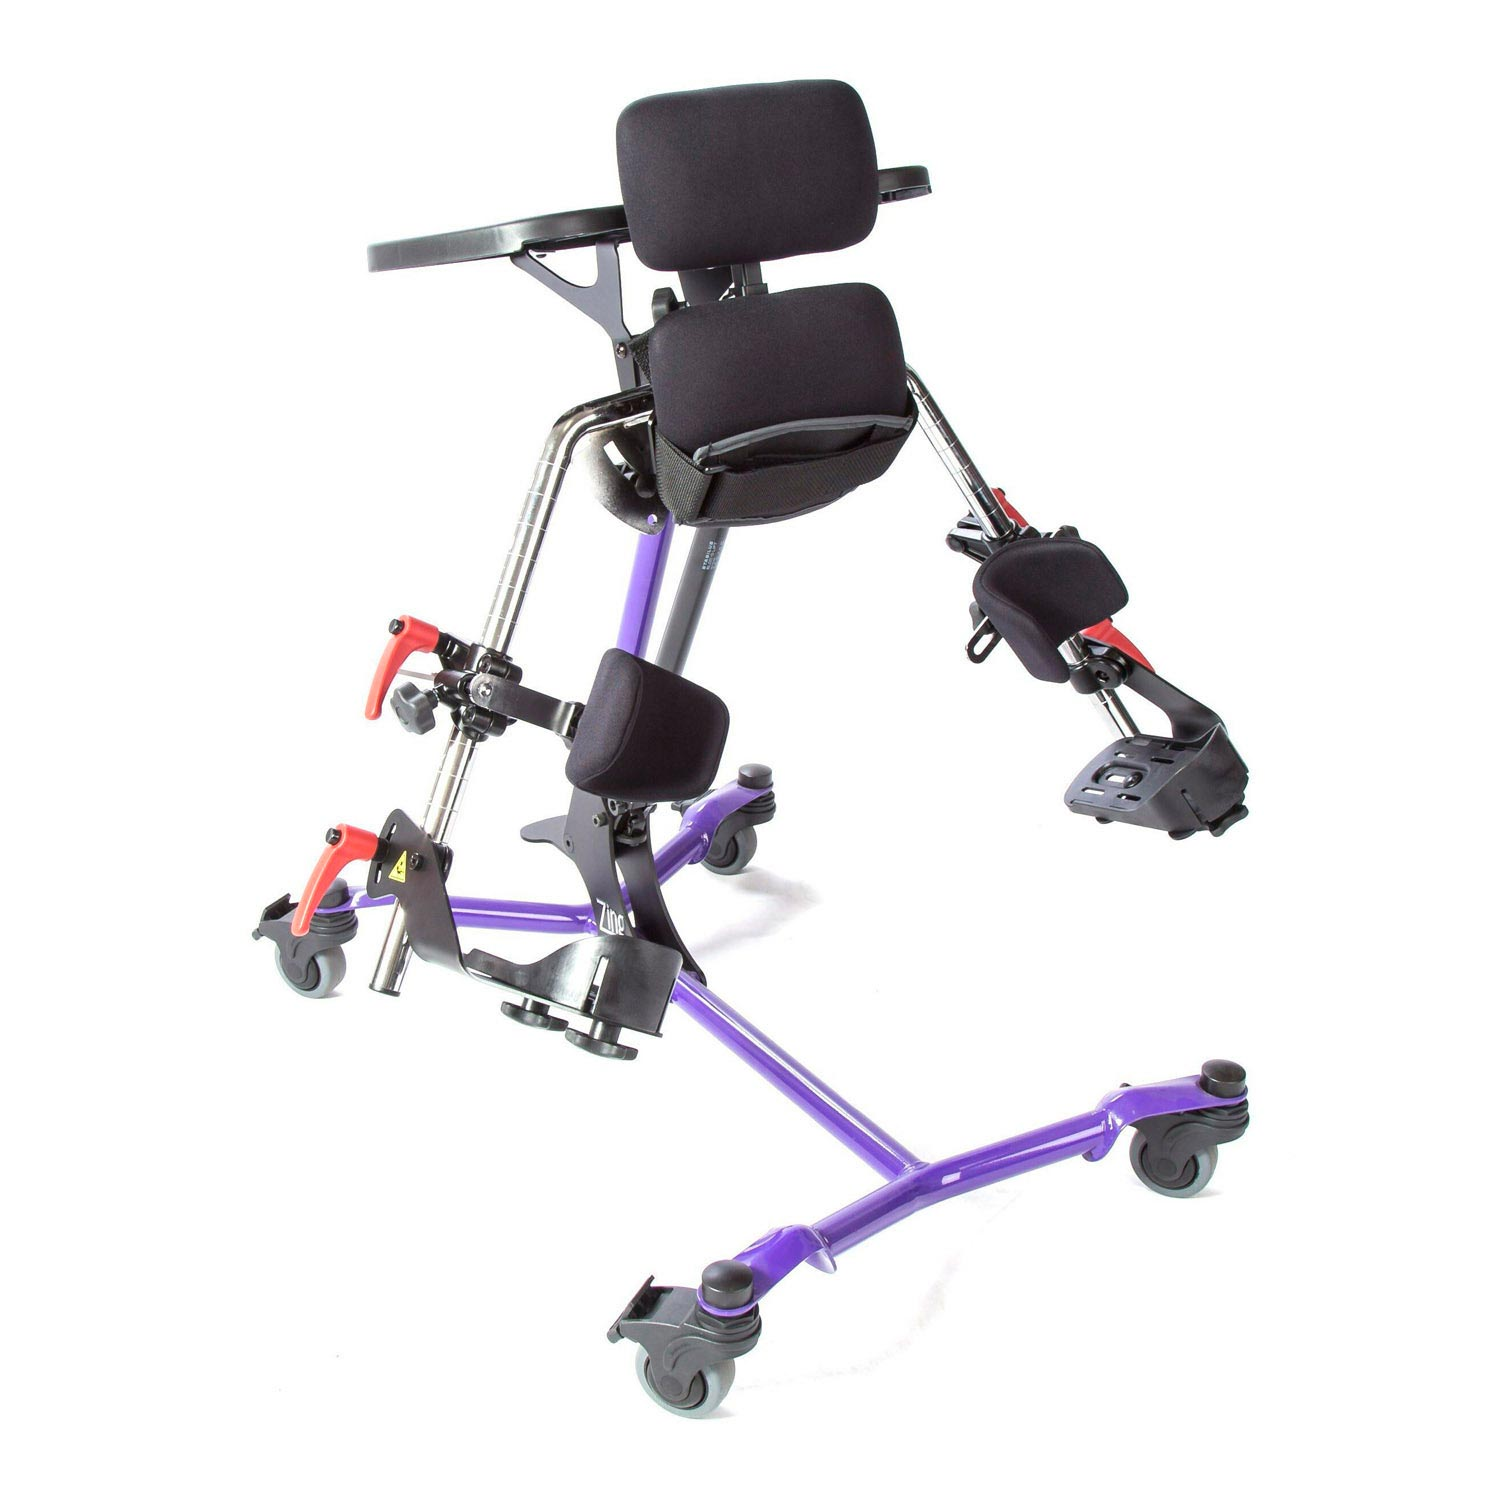 Zing prone stander - Mast with leg abduction